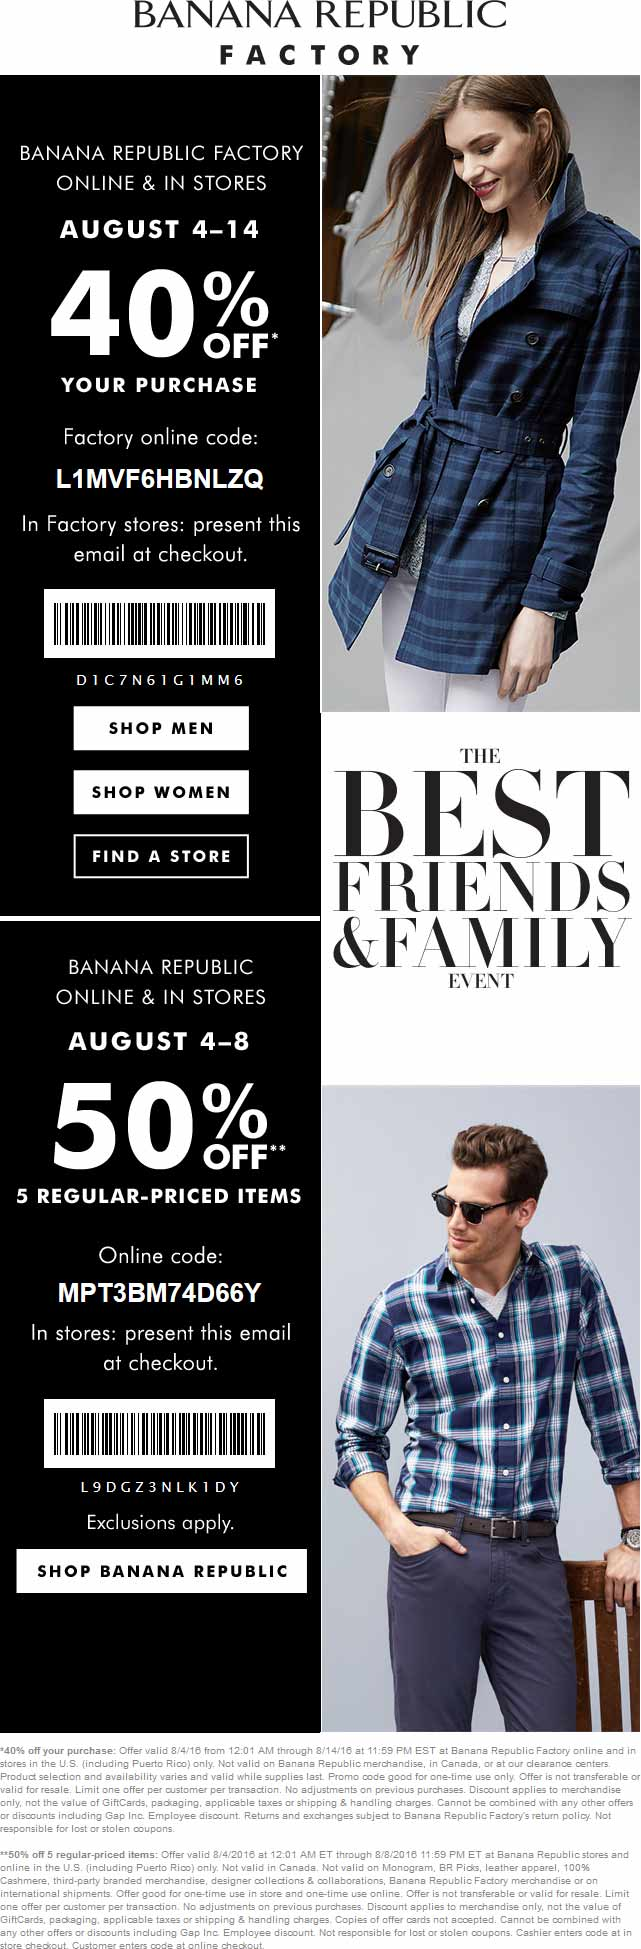 Banana Republic Factory Coupon March 2018 Extra 40-50% off at Banana Republic Factory, or online via promo code L1MVF6HBNLZQ